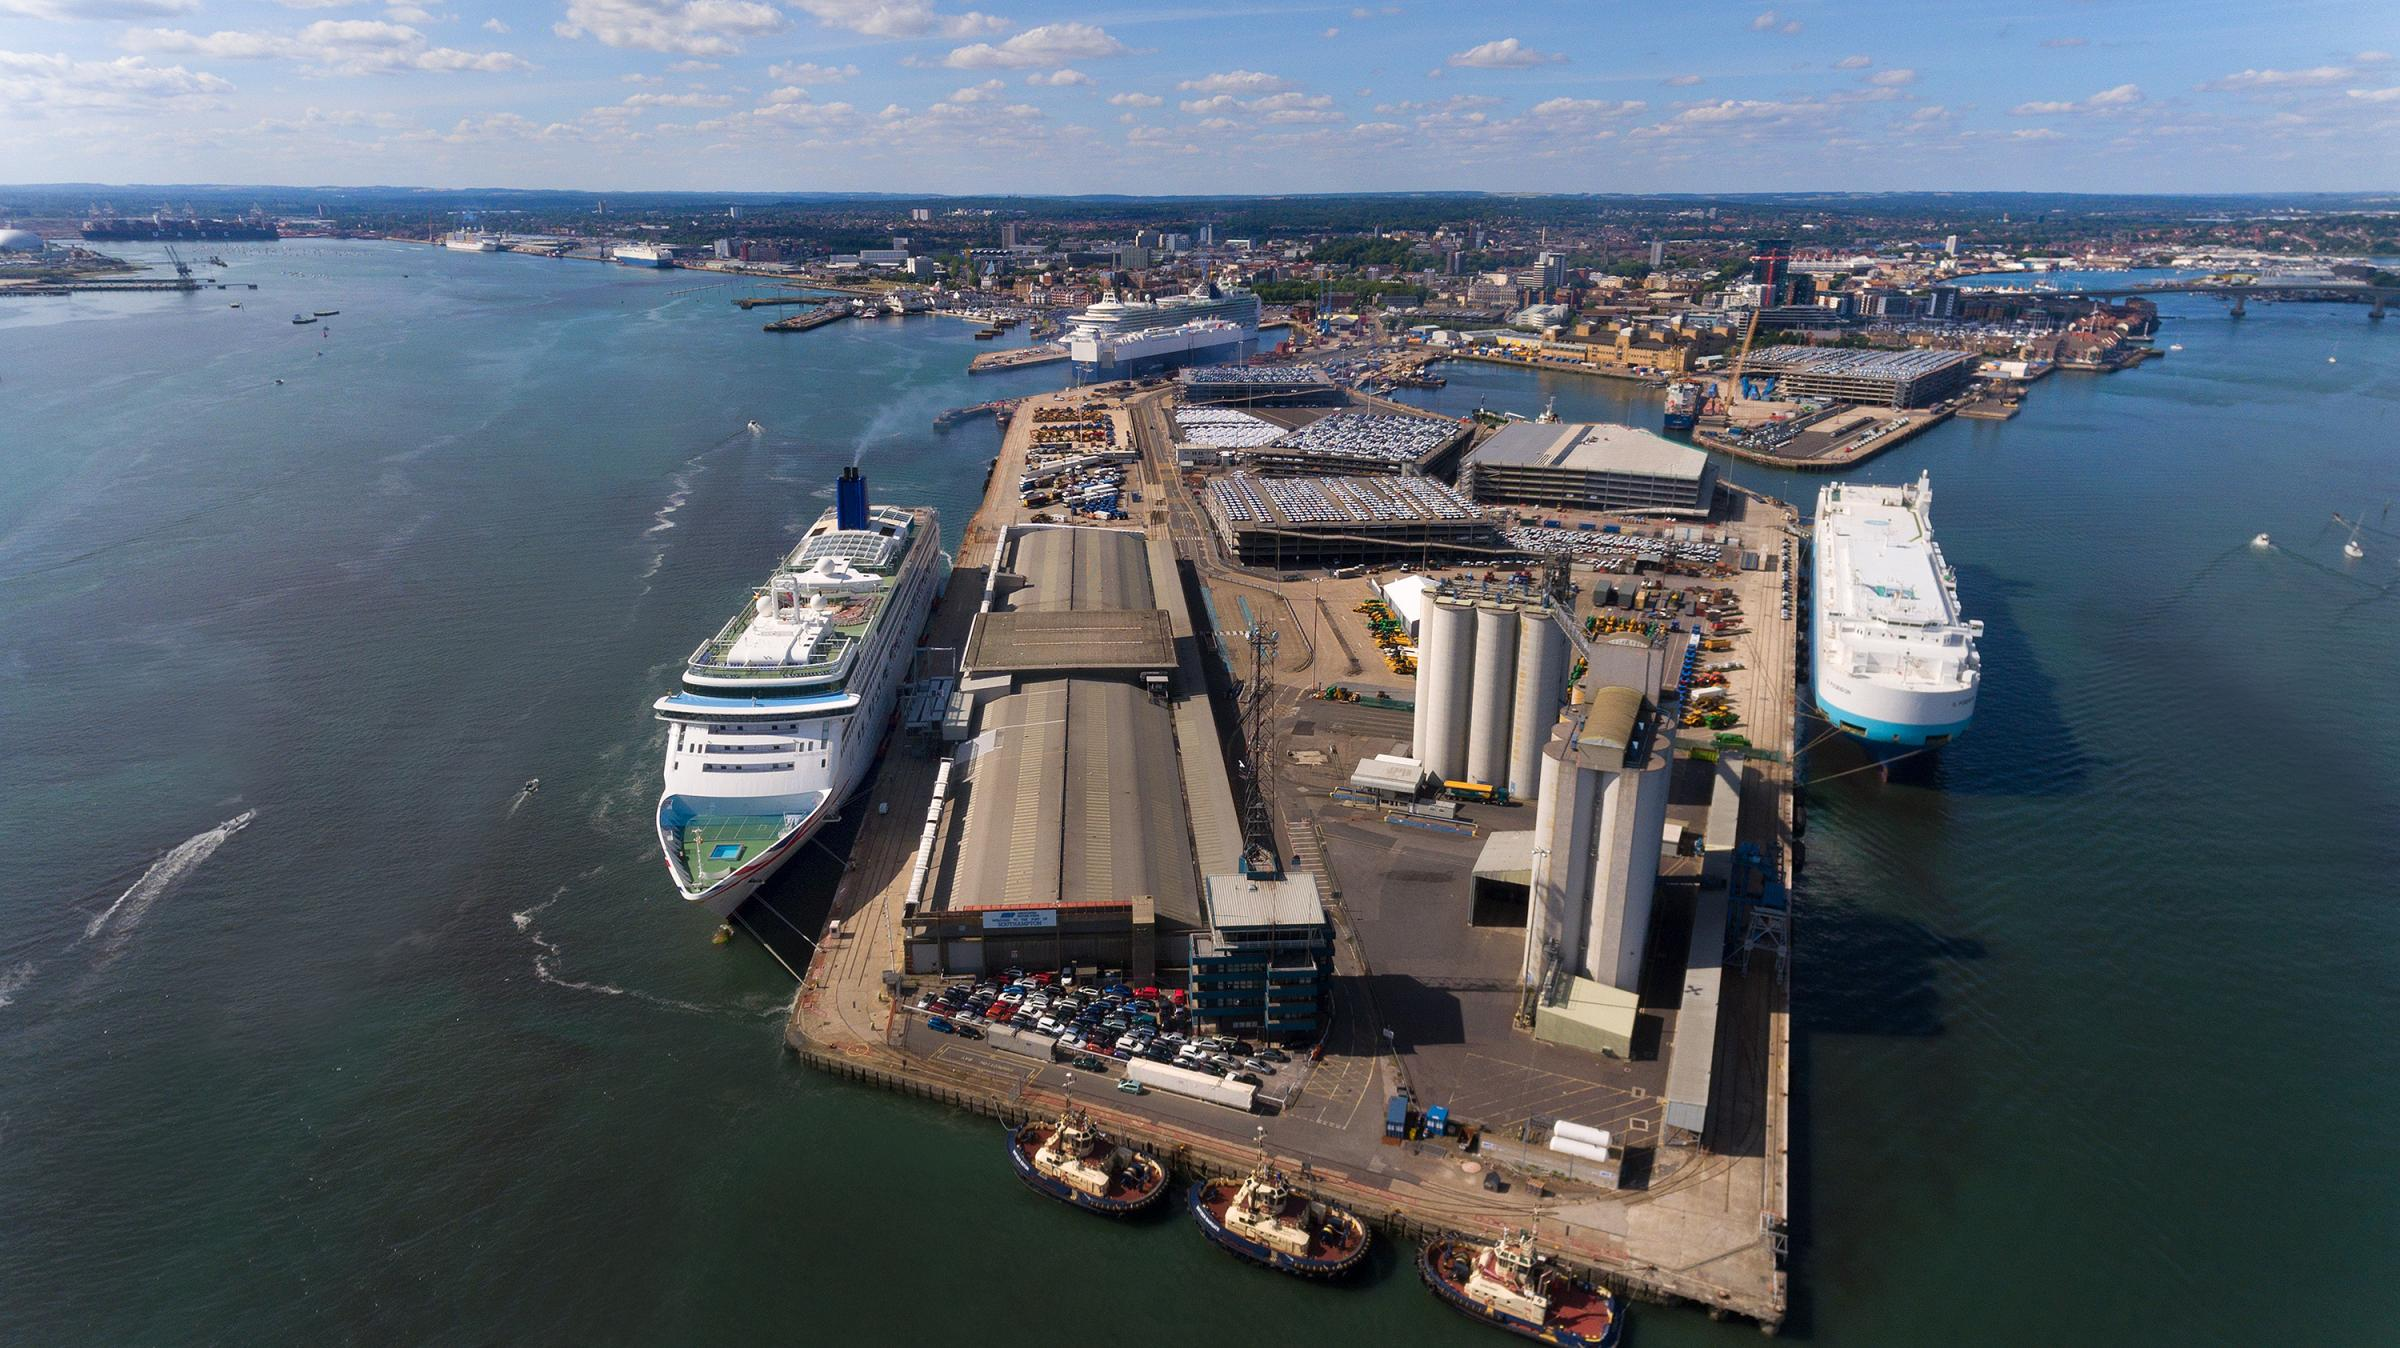 Aerial view of Southampton docks